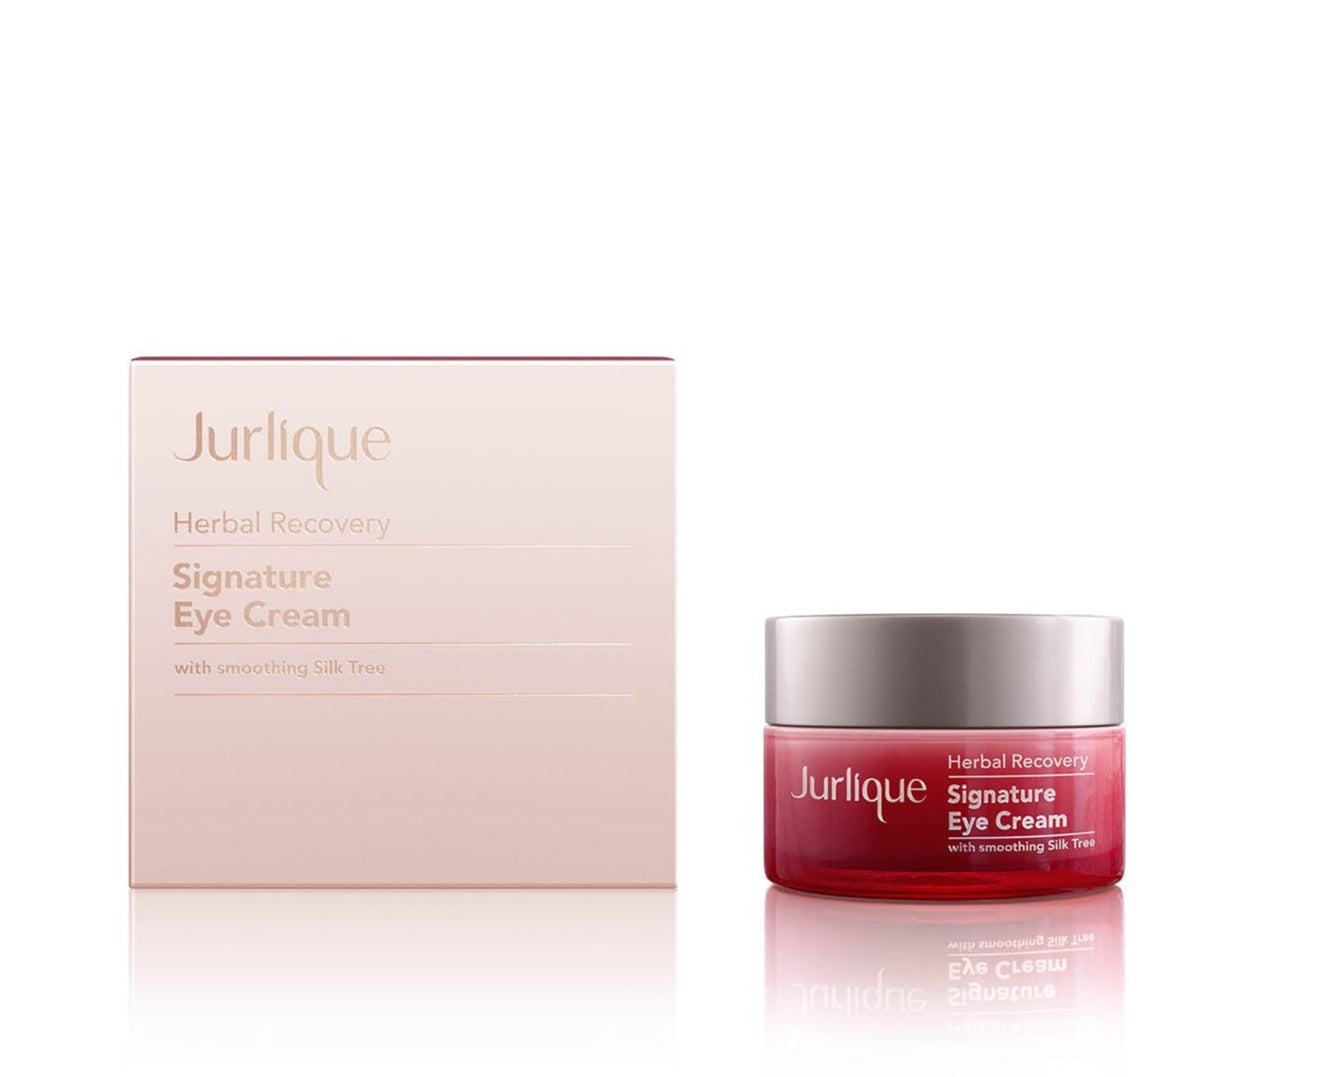 Herbal Recovery Signature Eye Cream